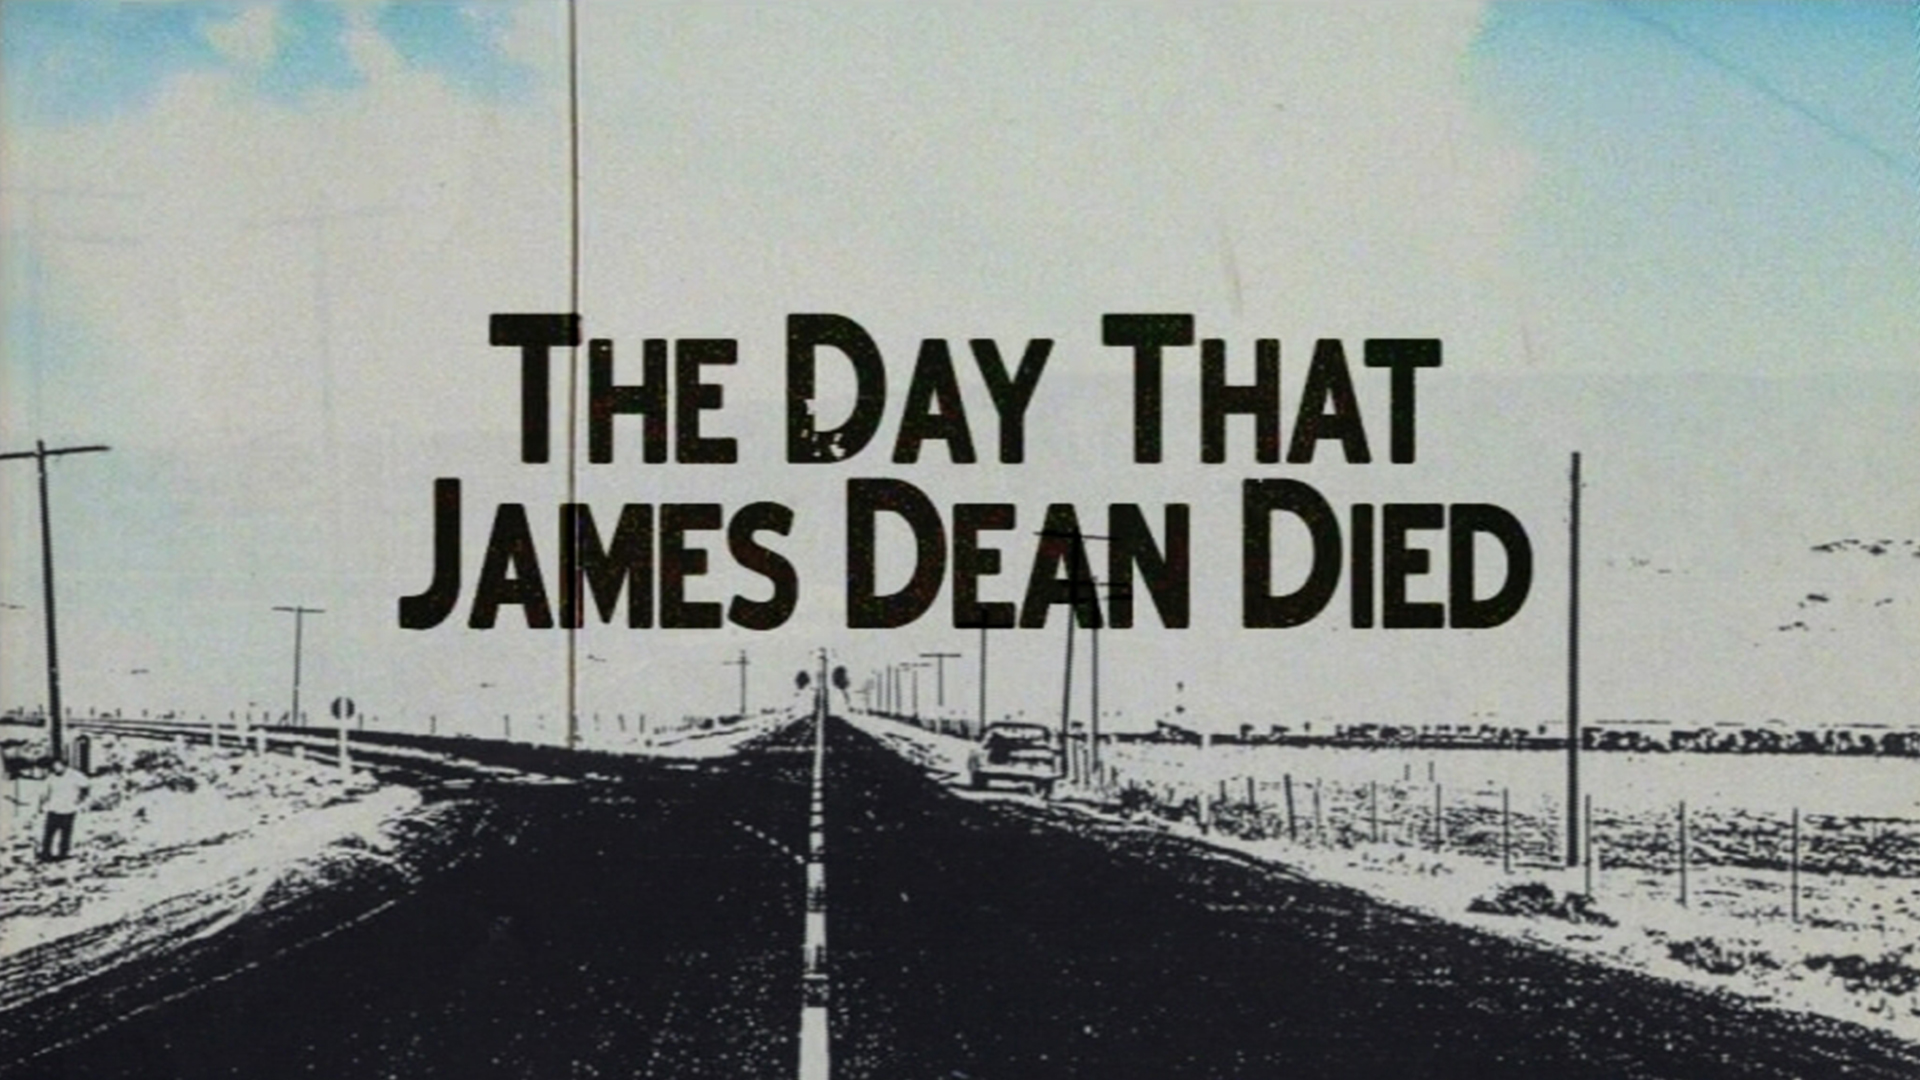 The Day James Dean Died